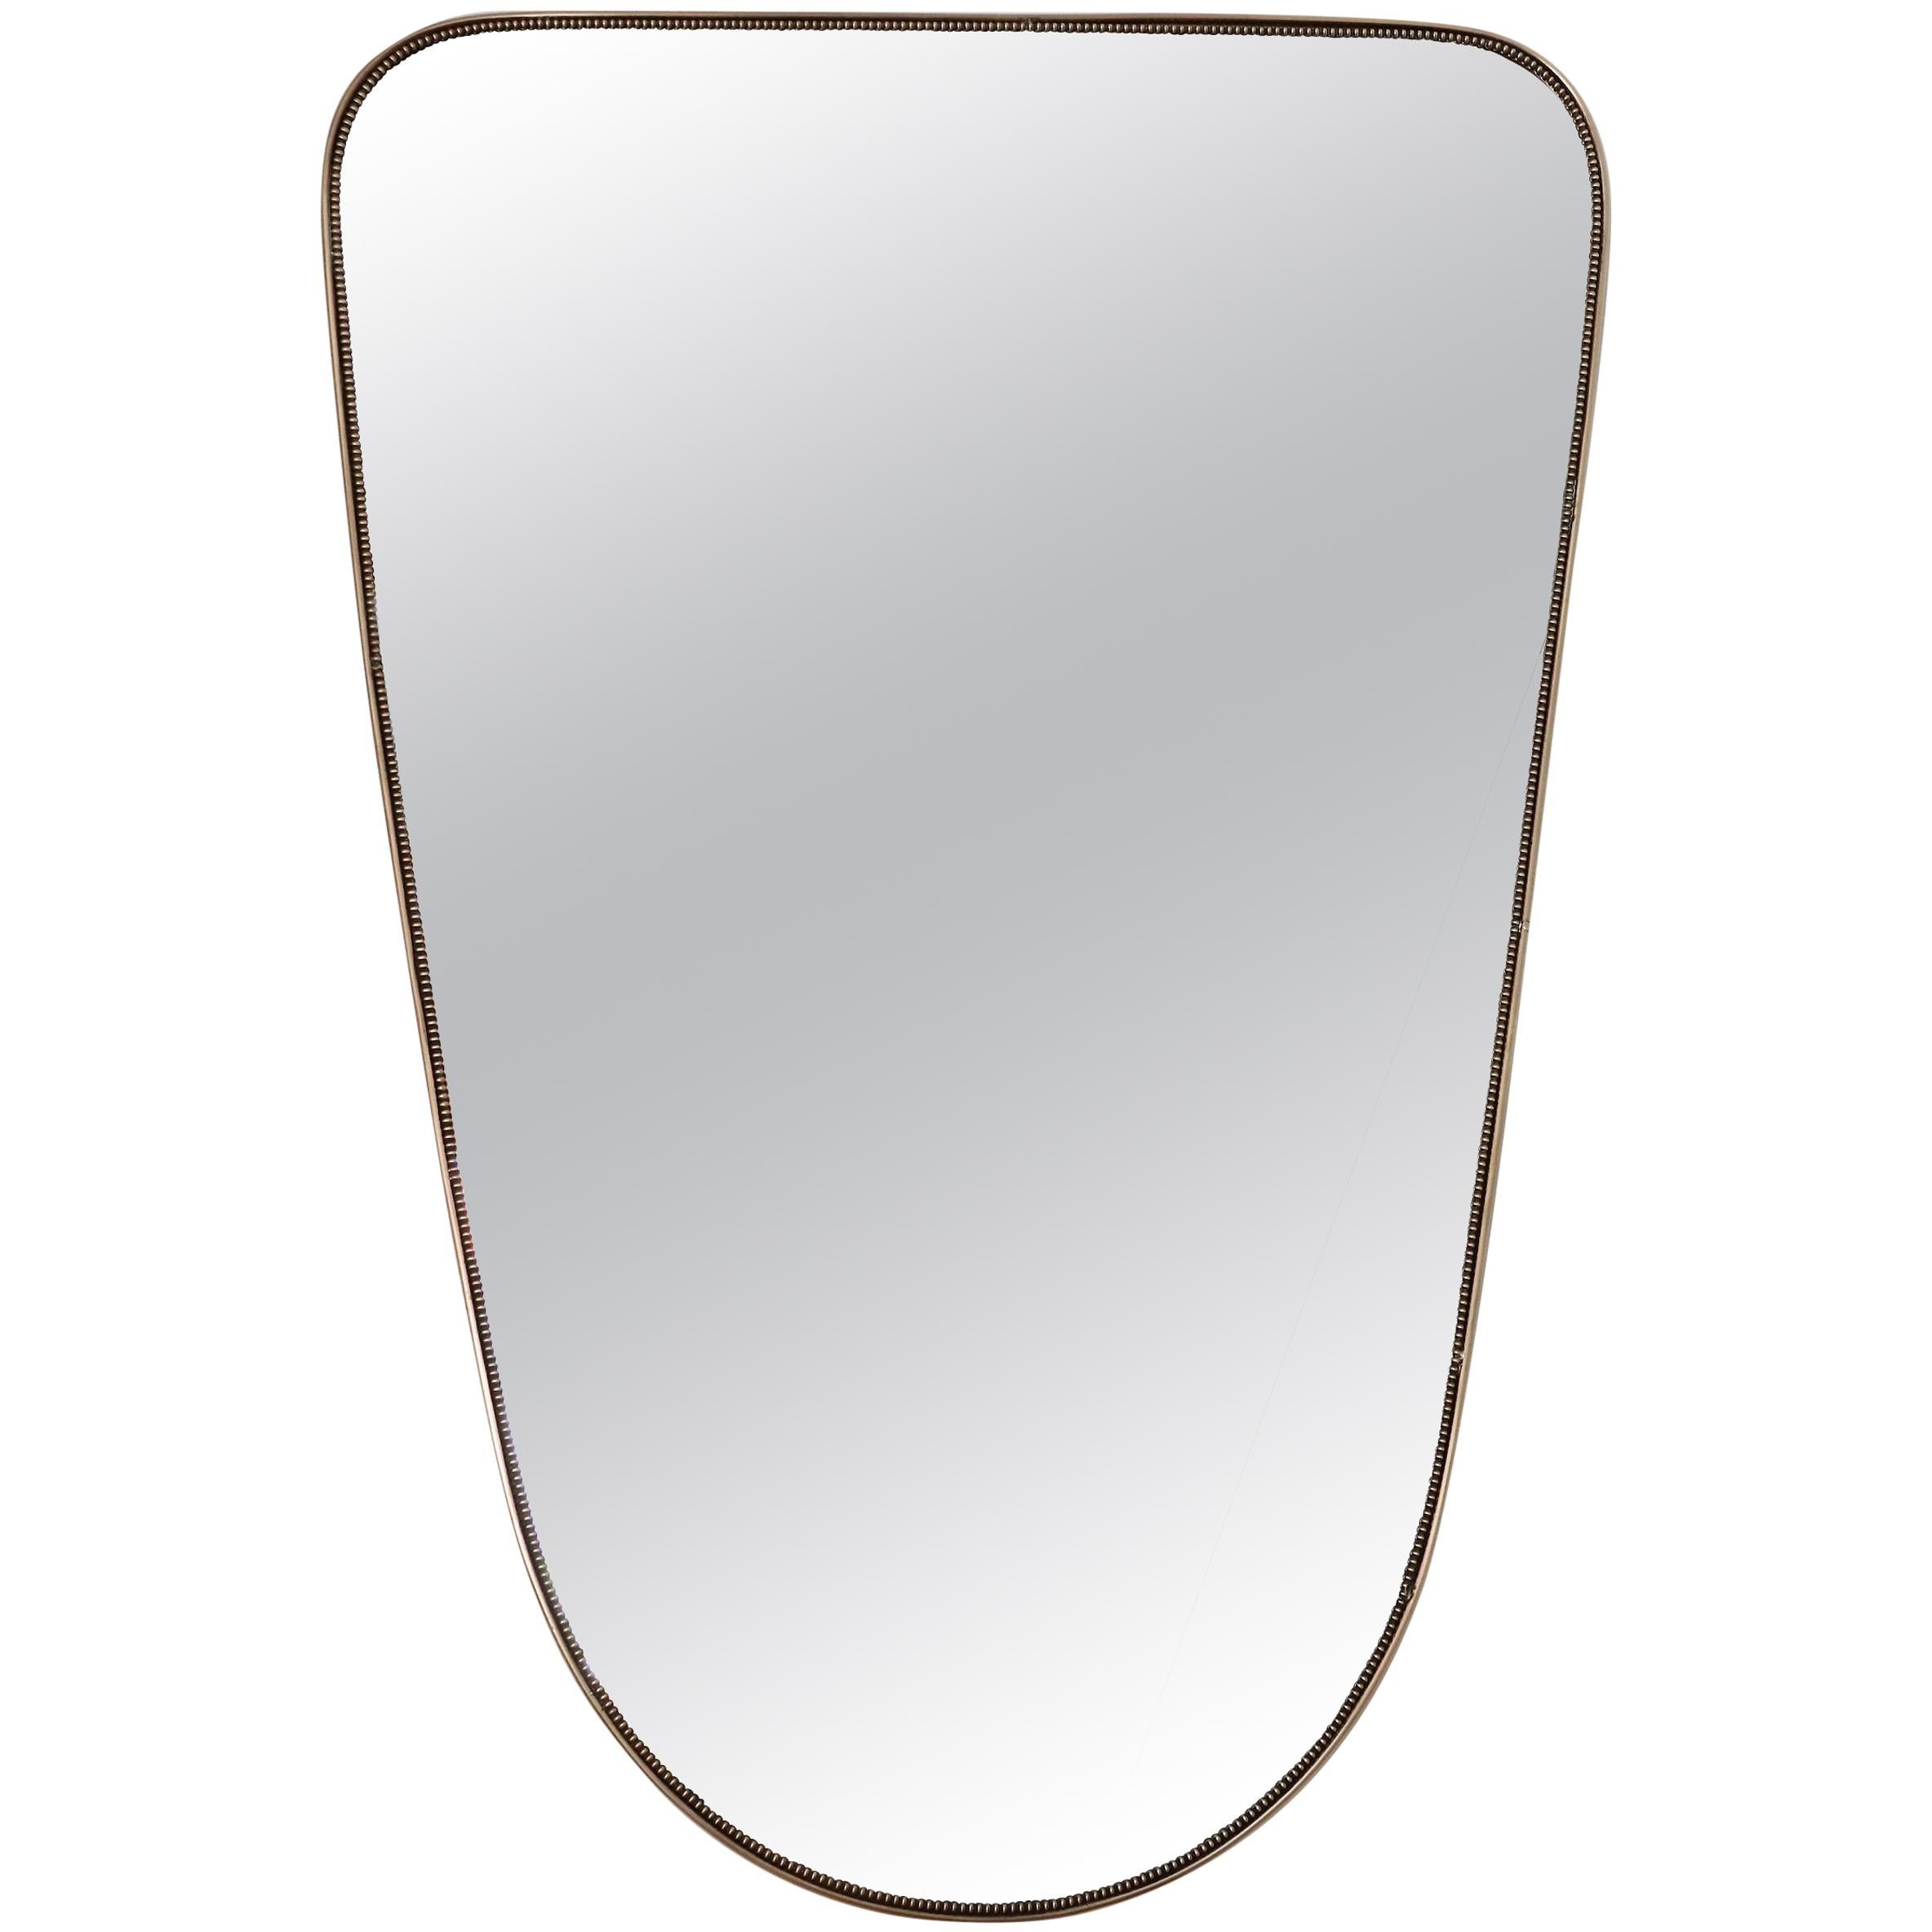 Italian Midcentury Extra Large Vintage Wall Mirror with Brass Frame, 1950s